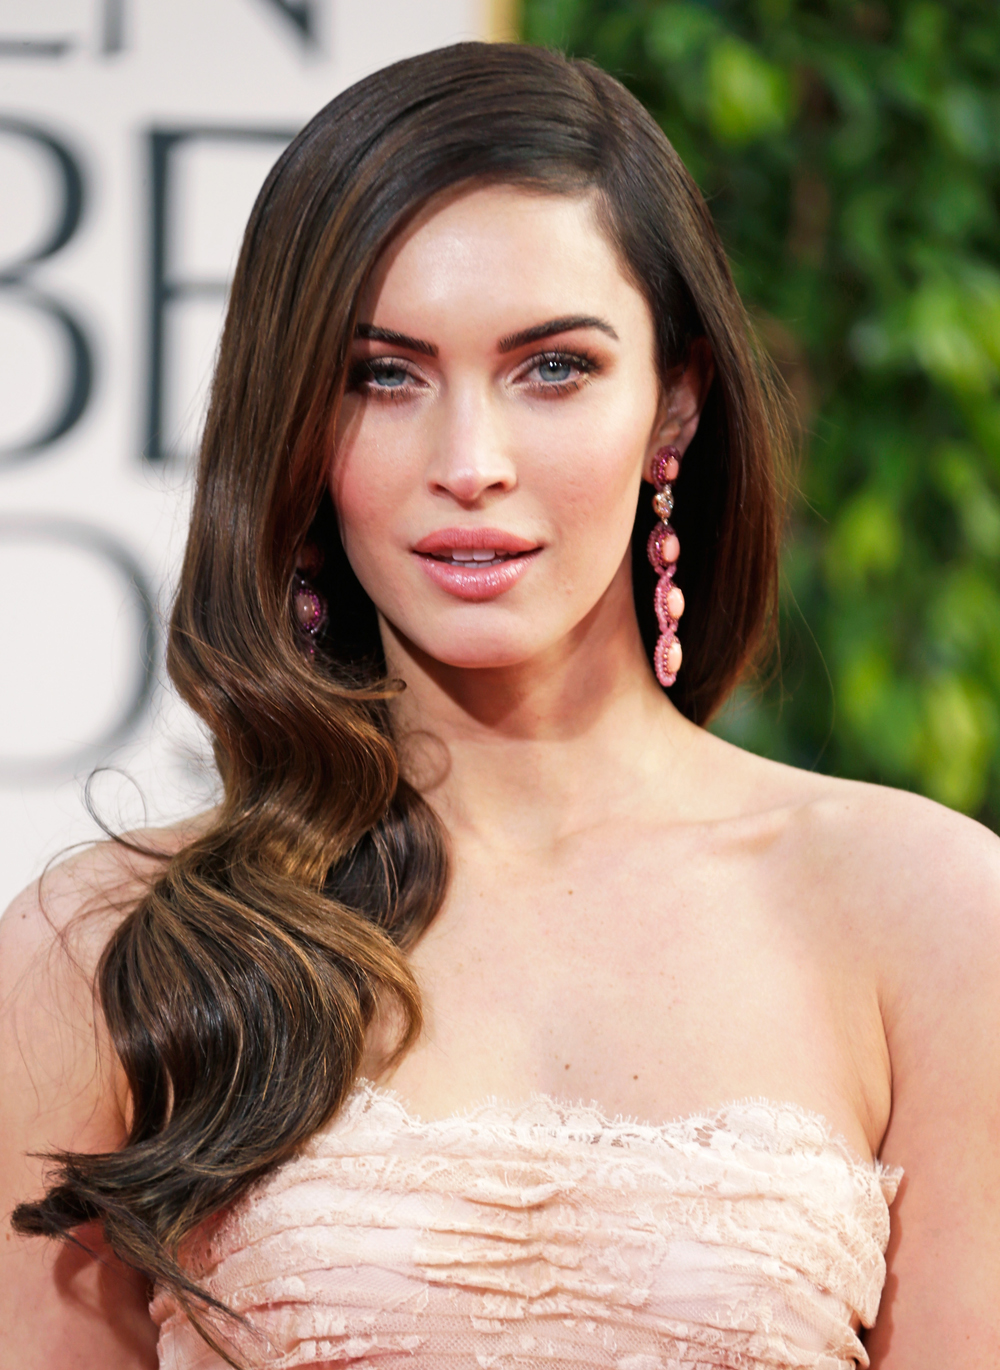 Jessica Chastain and Megan Fox's Hair at the 2013 Golden Globes